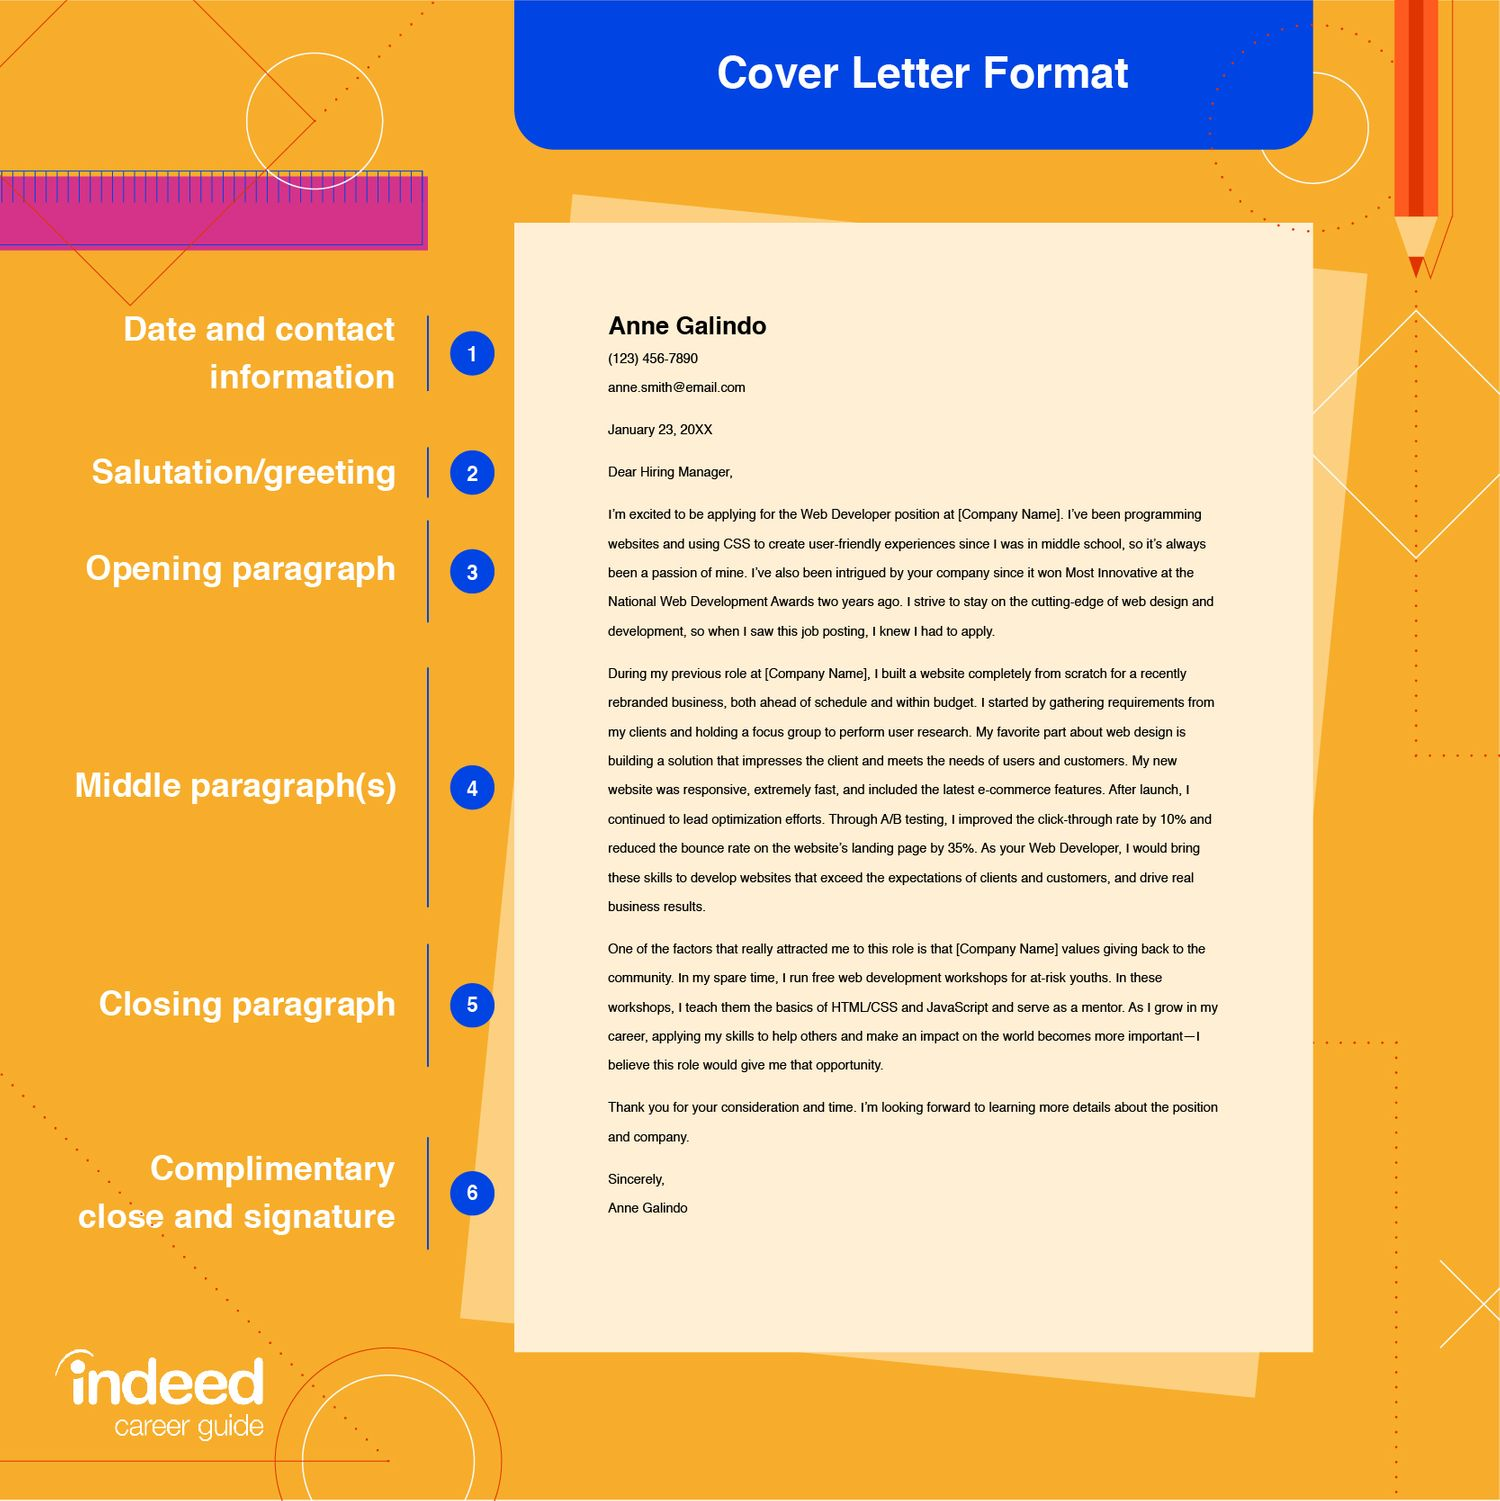 powerful ways to start cover letter with examples indeed resume sentence starters resized Resume Resume Sentence Starters